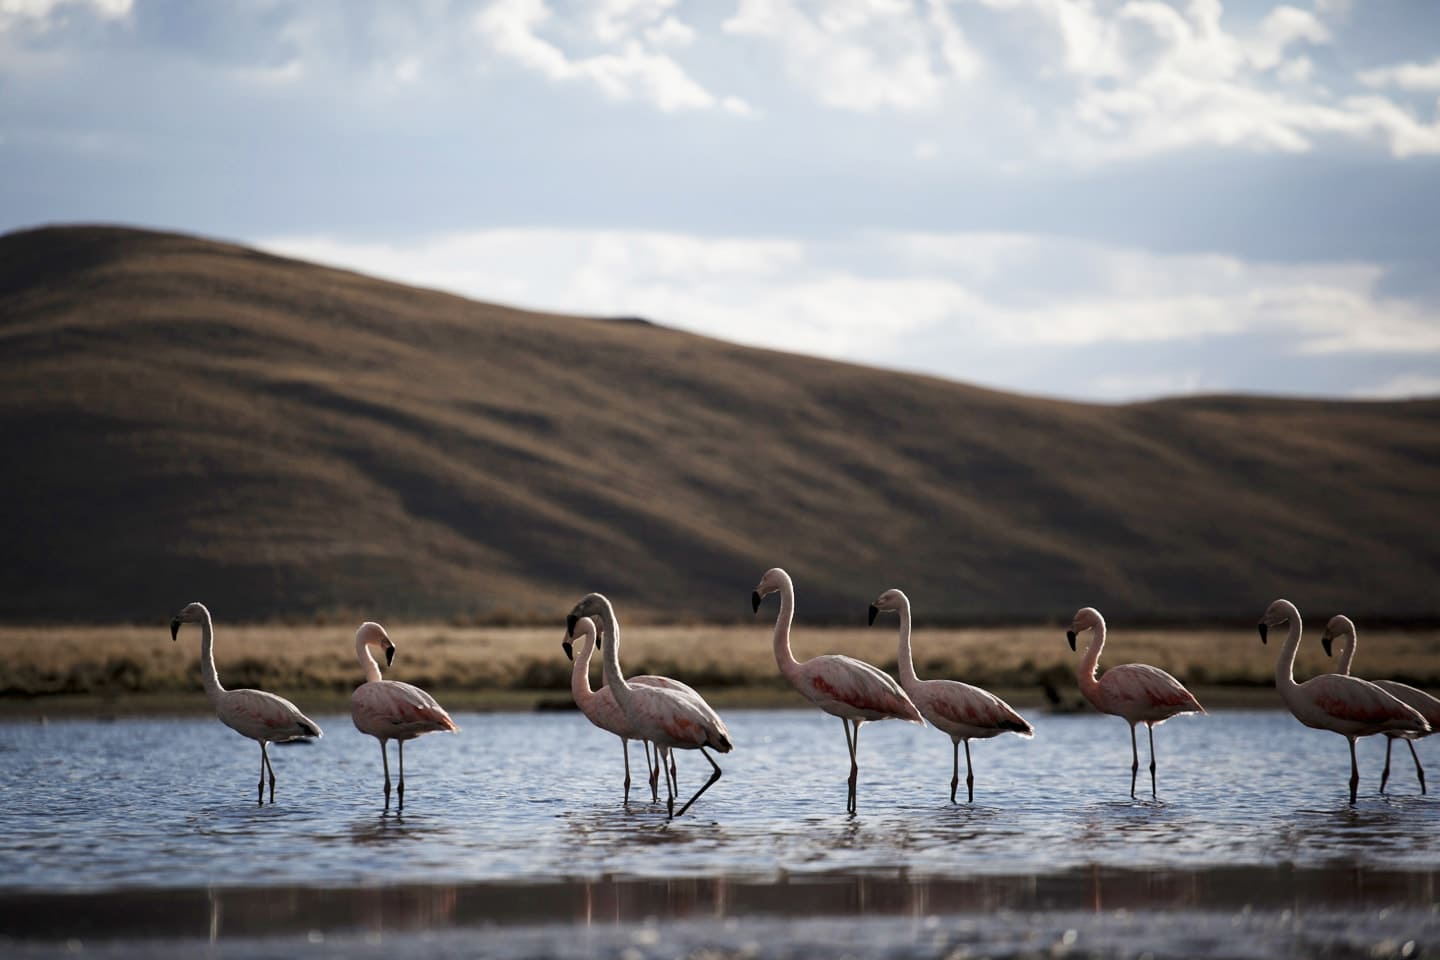 flamingos, birds, animals, nature, lake, landscape, cute - Lagunillas